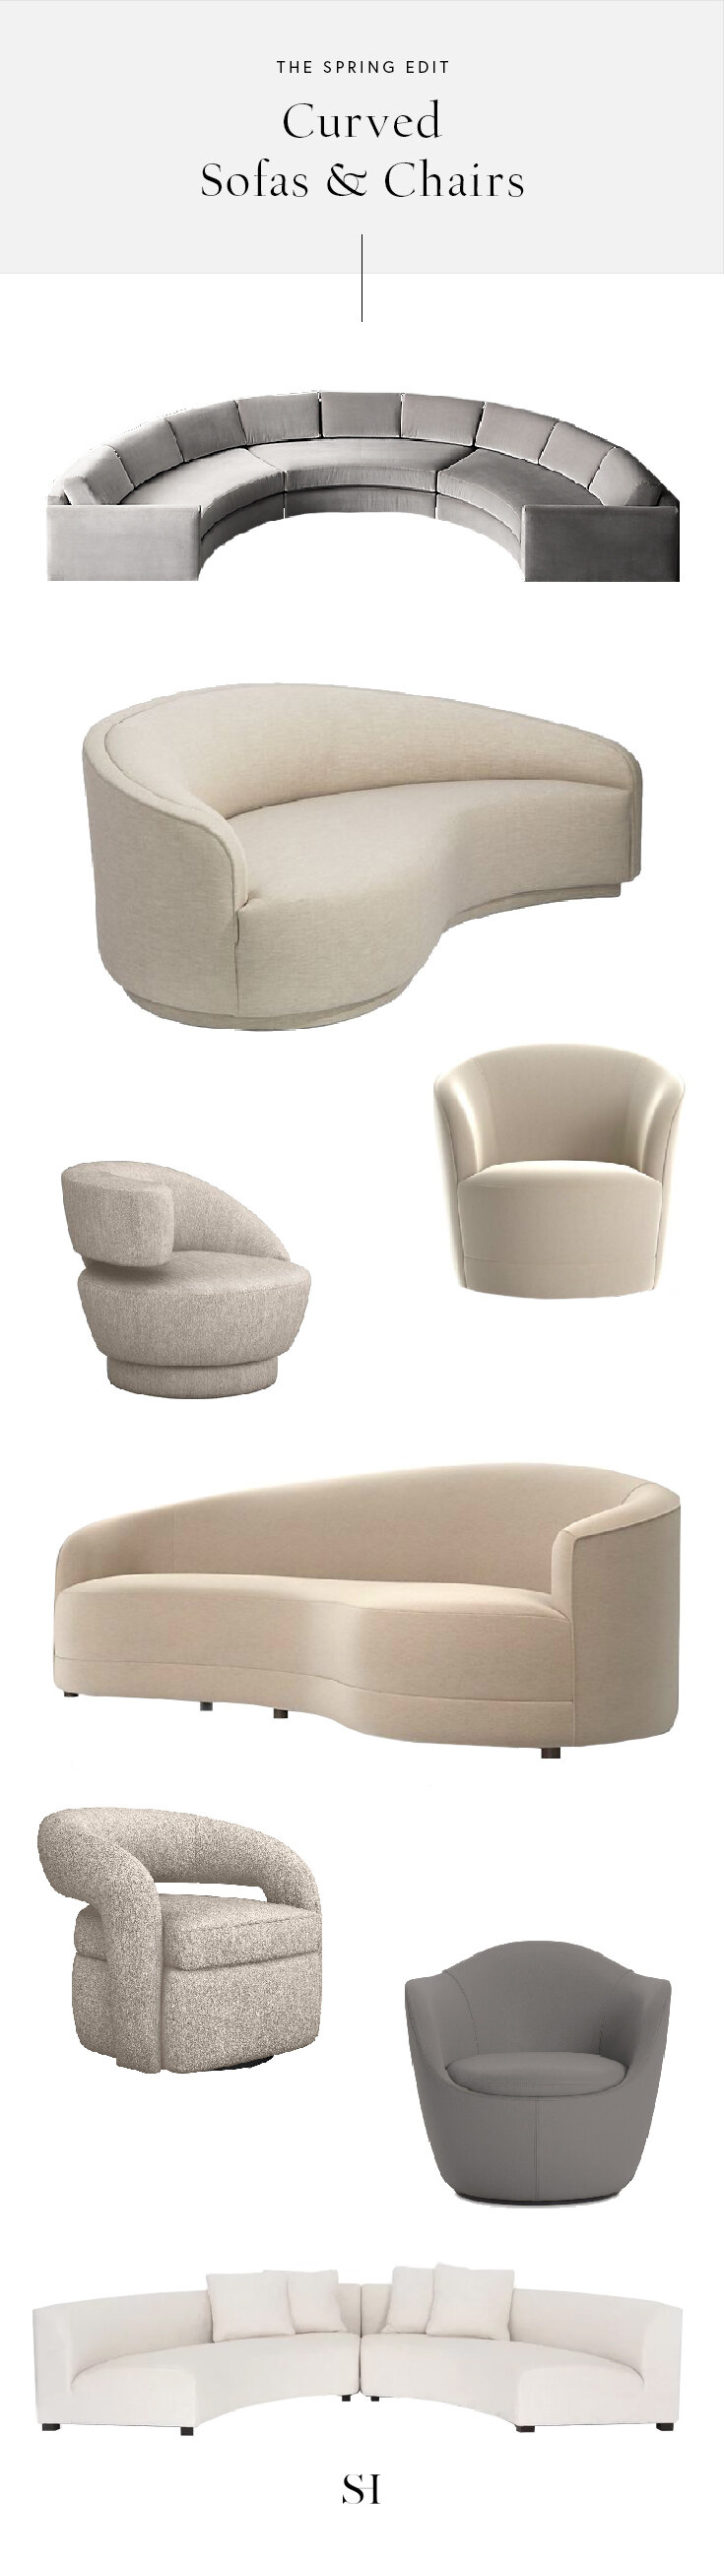 Curved-and-Curvy-Furniture-chairs-and-sofas---The-spring-Trend-for-interior-design-and-decorating-by-the-savvy-heart-home-decor-blog.jpg